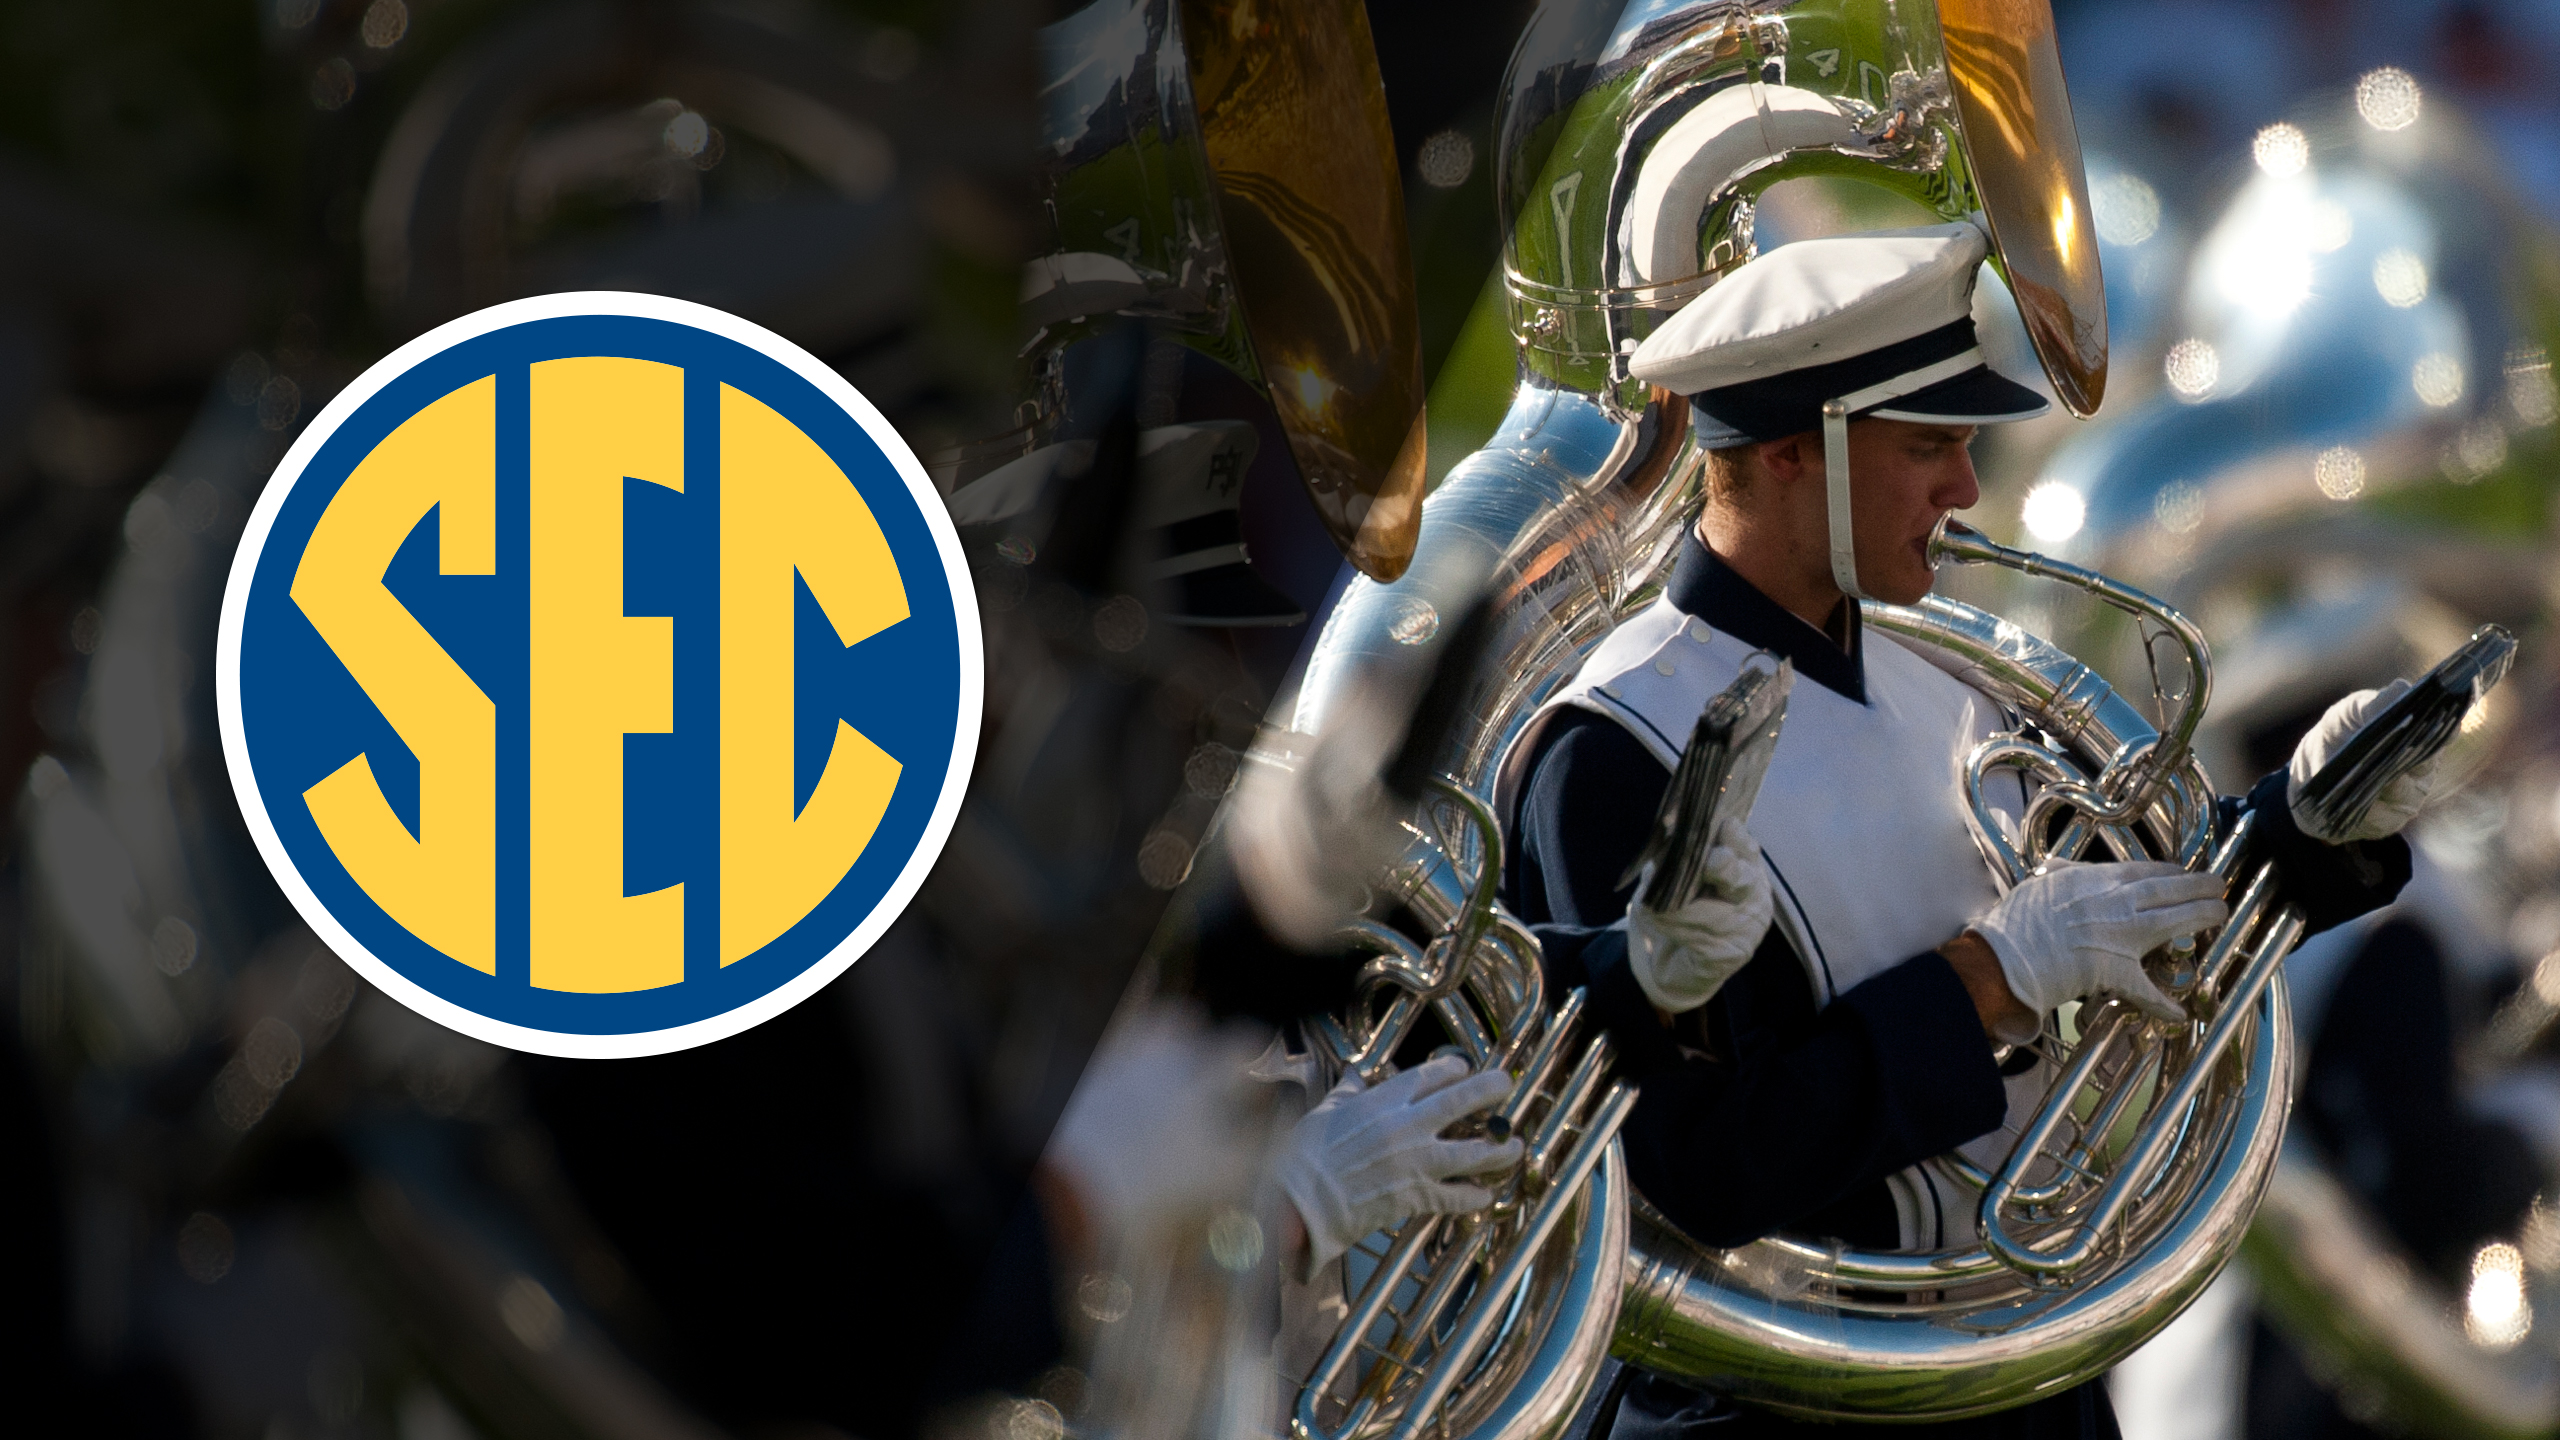 SEC Halftime Band Performances at Missouri